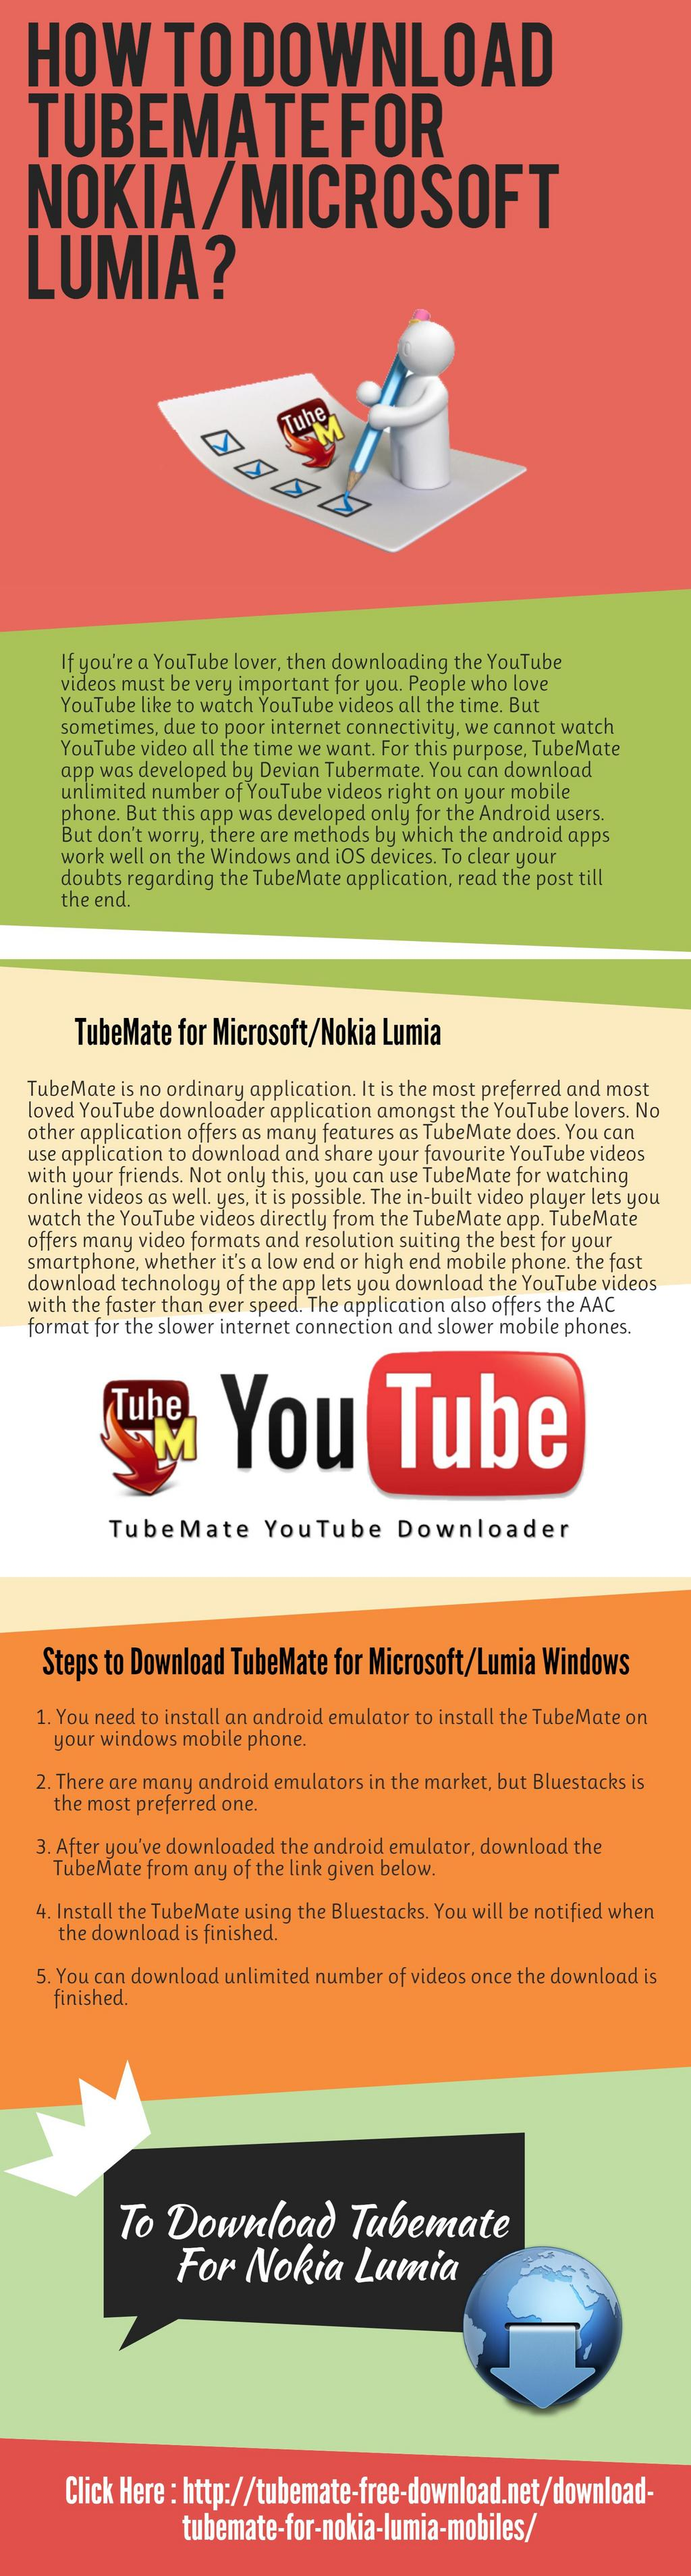 How to download tubemate for nokiamicrosoft lumia by wong thomas how to download tubemate for nokiamicrosoft lumia ccuart Images